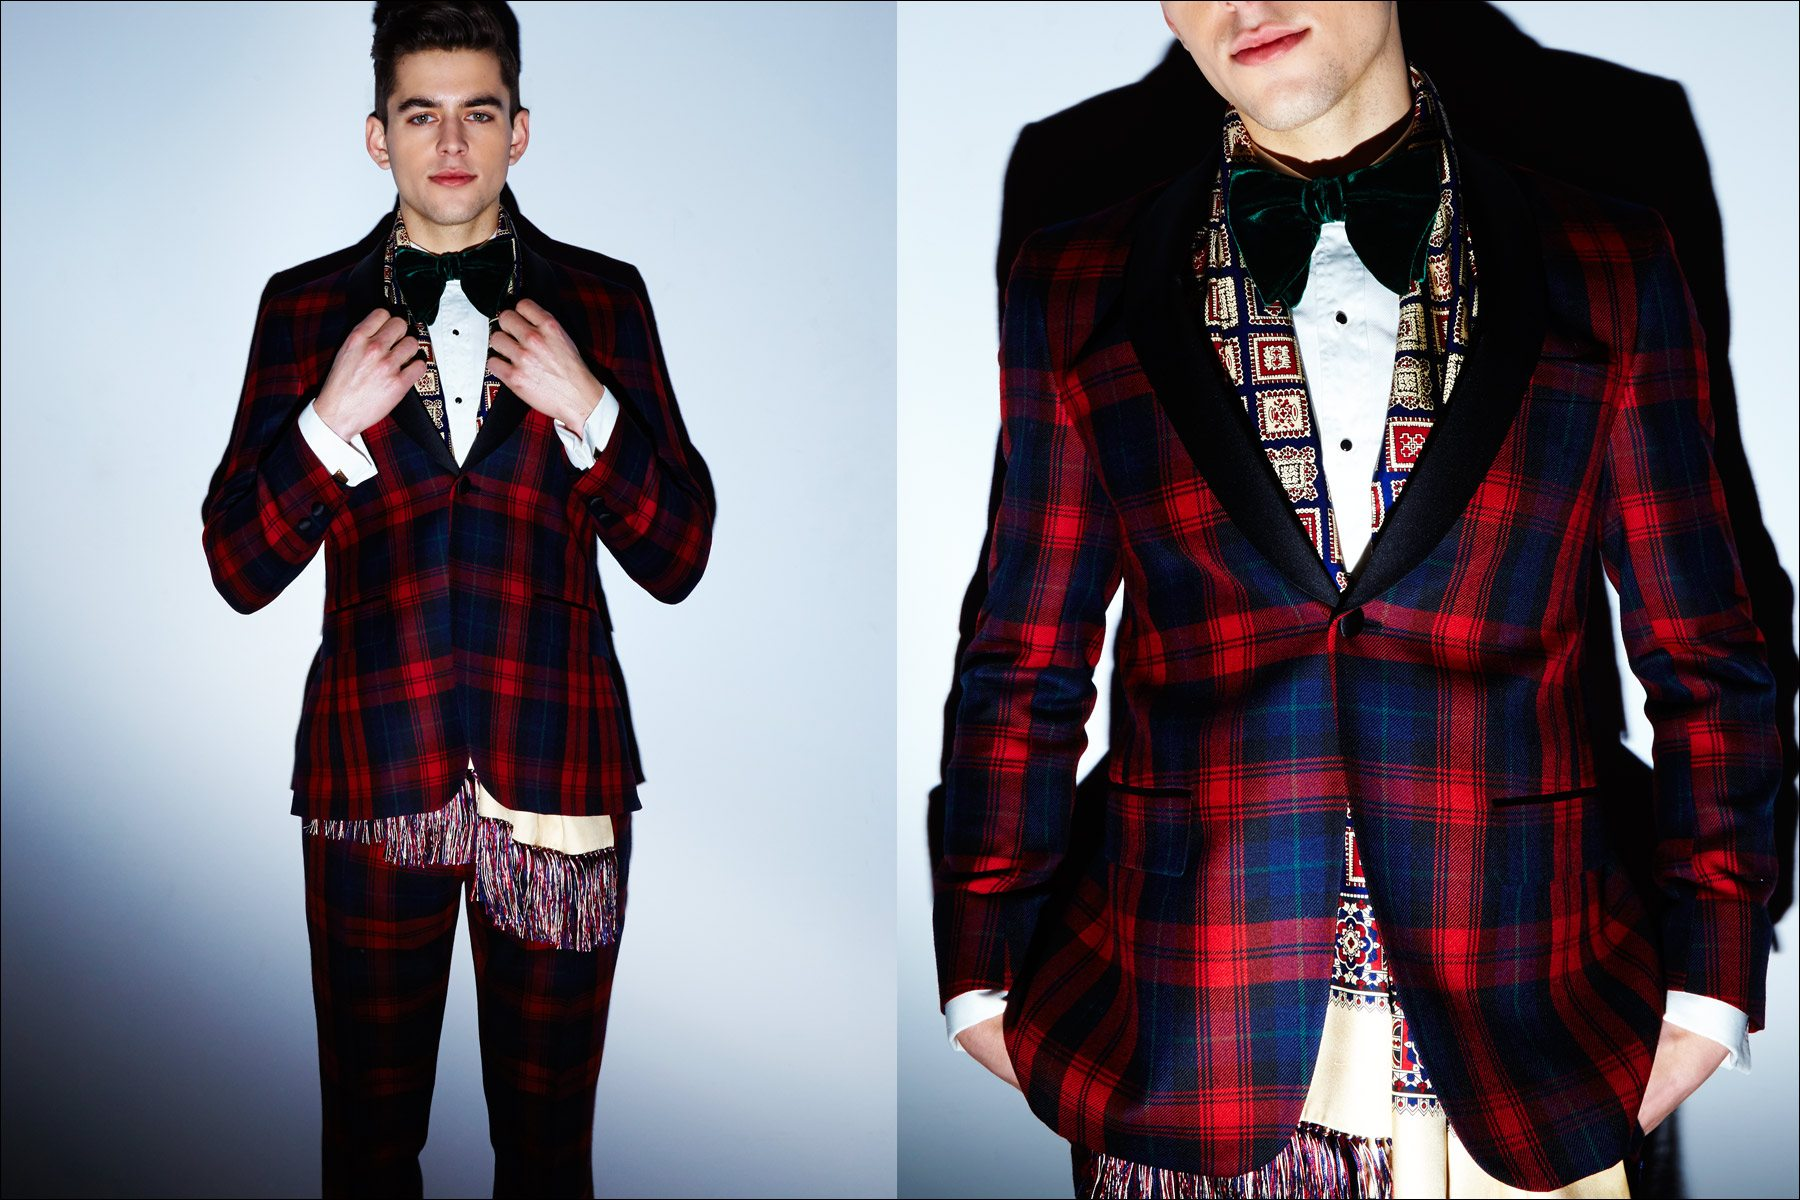 A red tartan tuxedo photographed backstage at David Hart F/W17 show. Photography by Alexander Thompson for Ponyboy magazine New York.